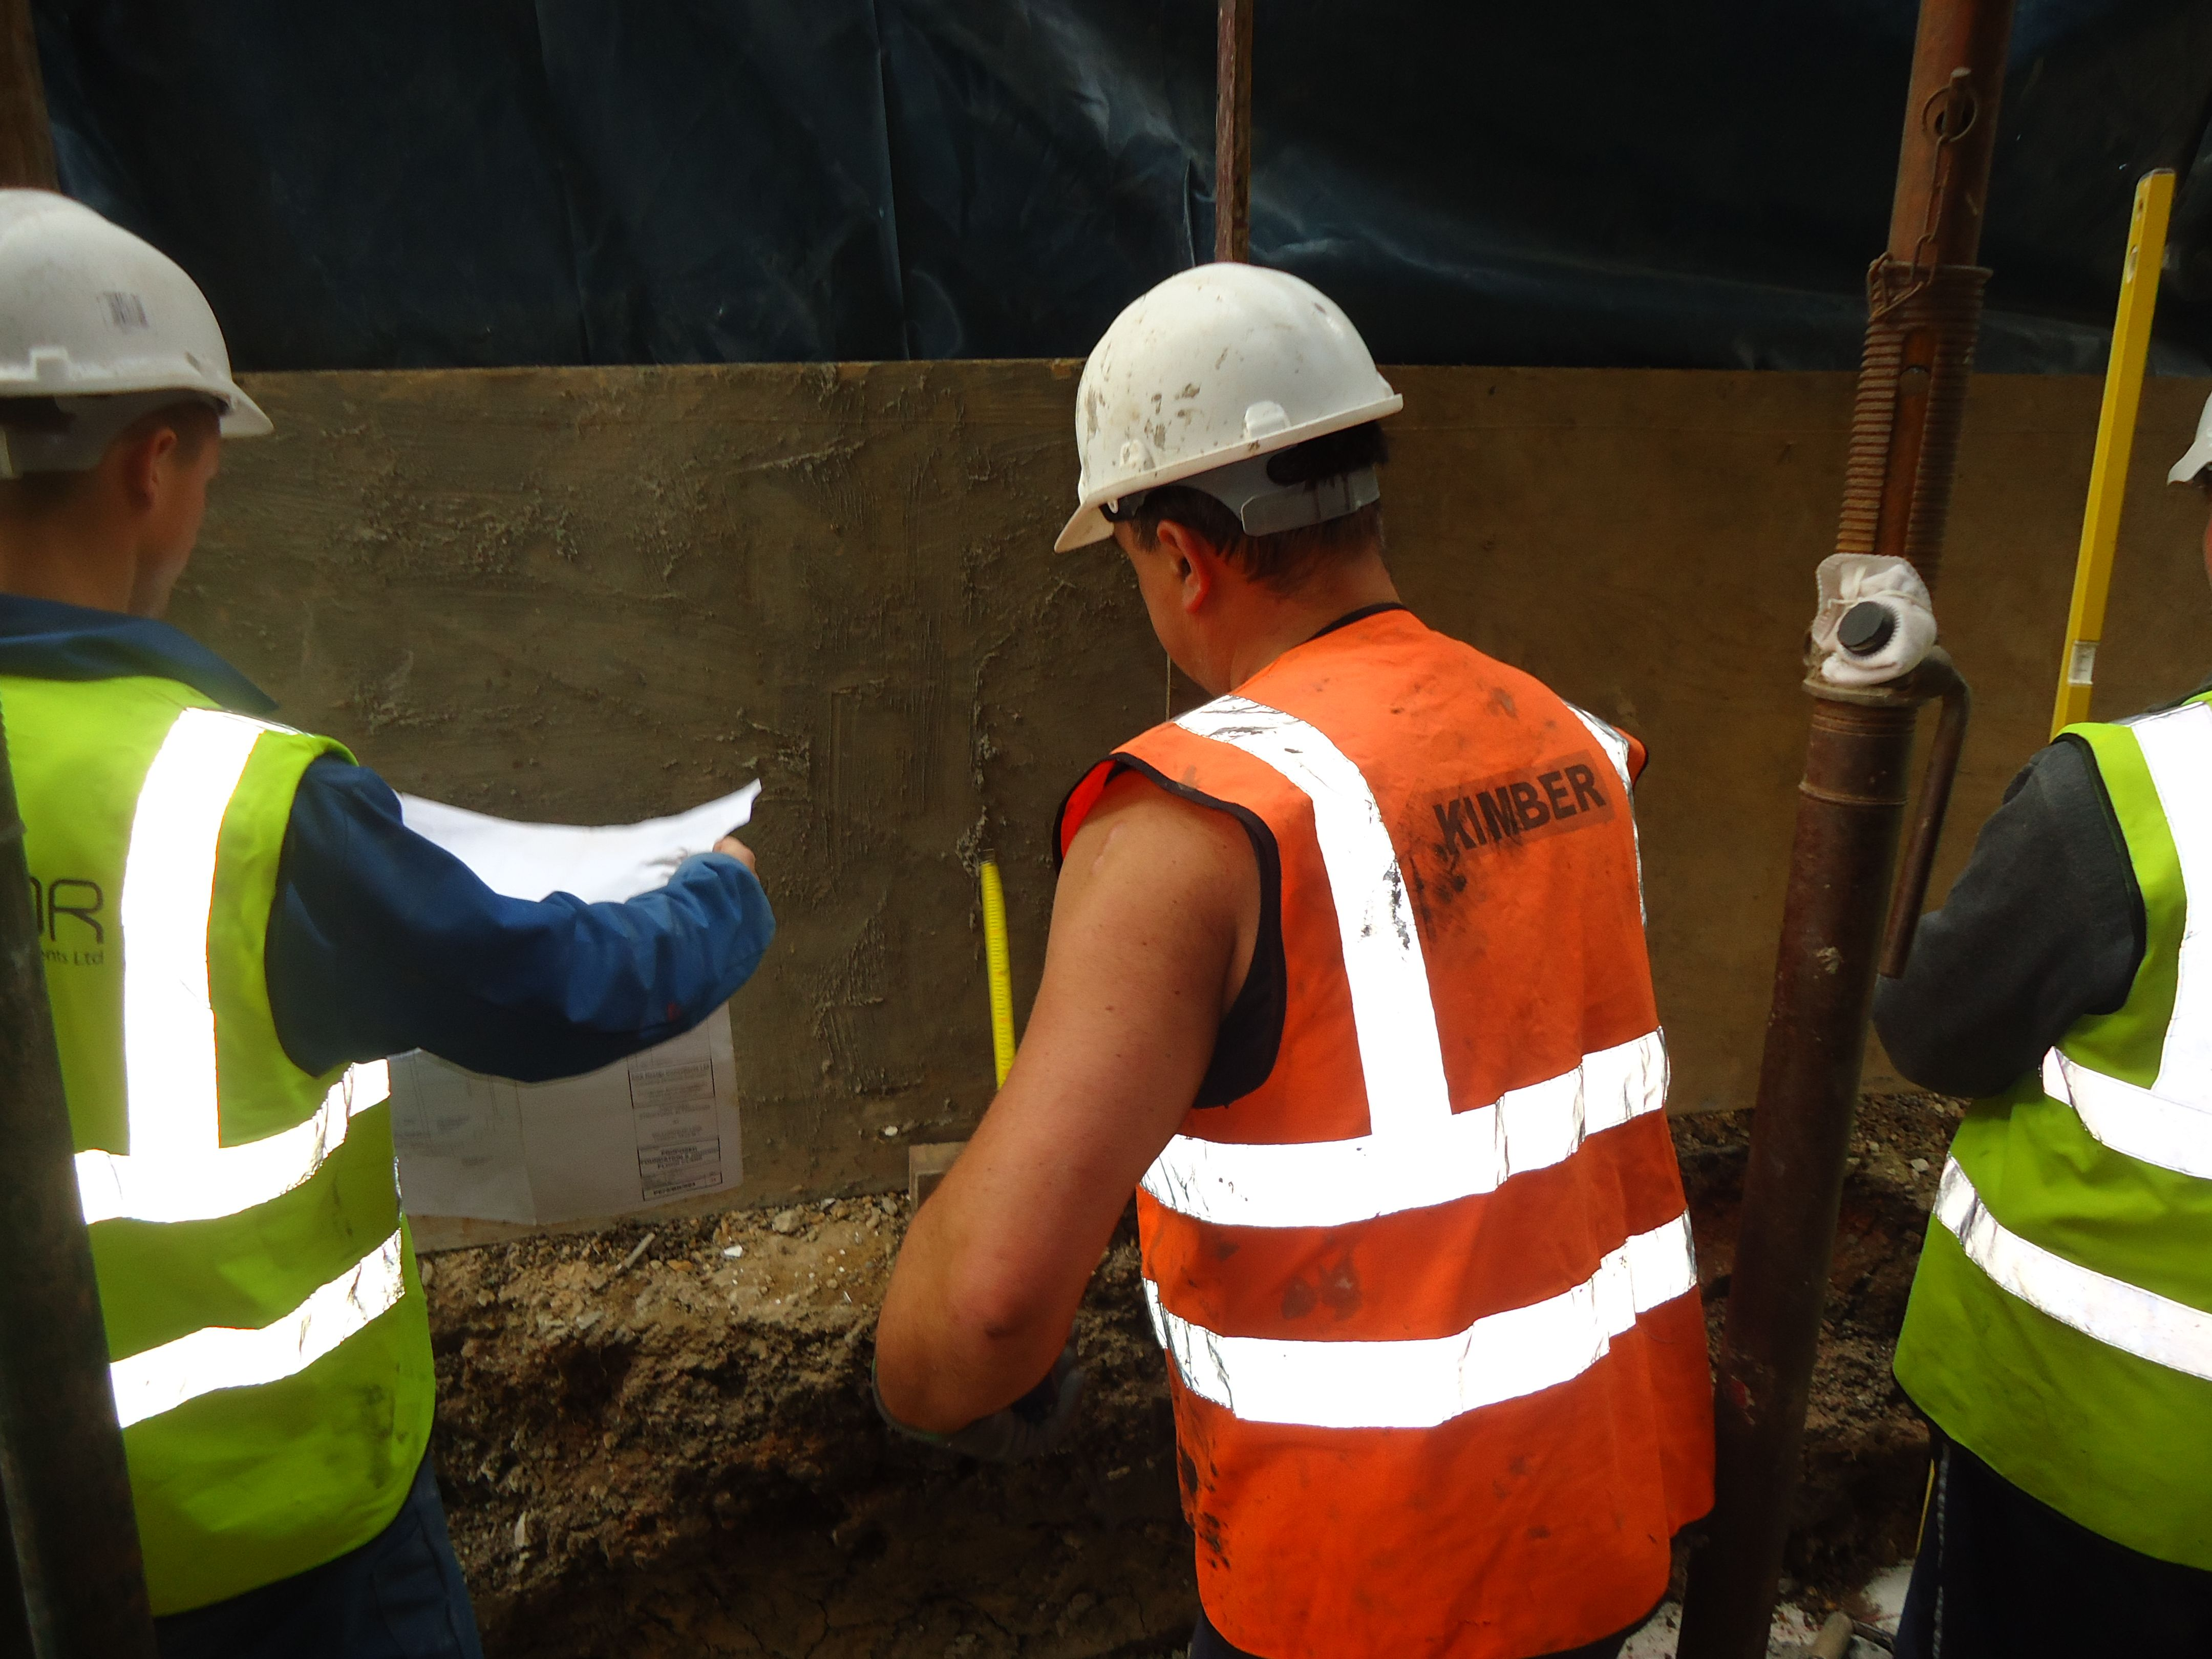 Men at work in Kent and London www.kimbercontracts.com